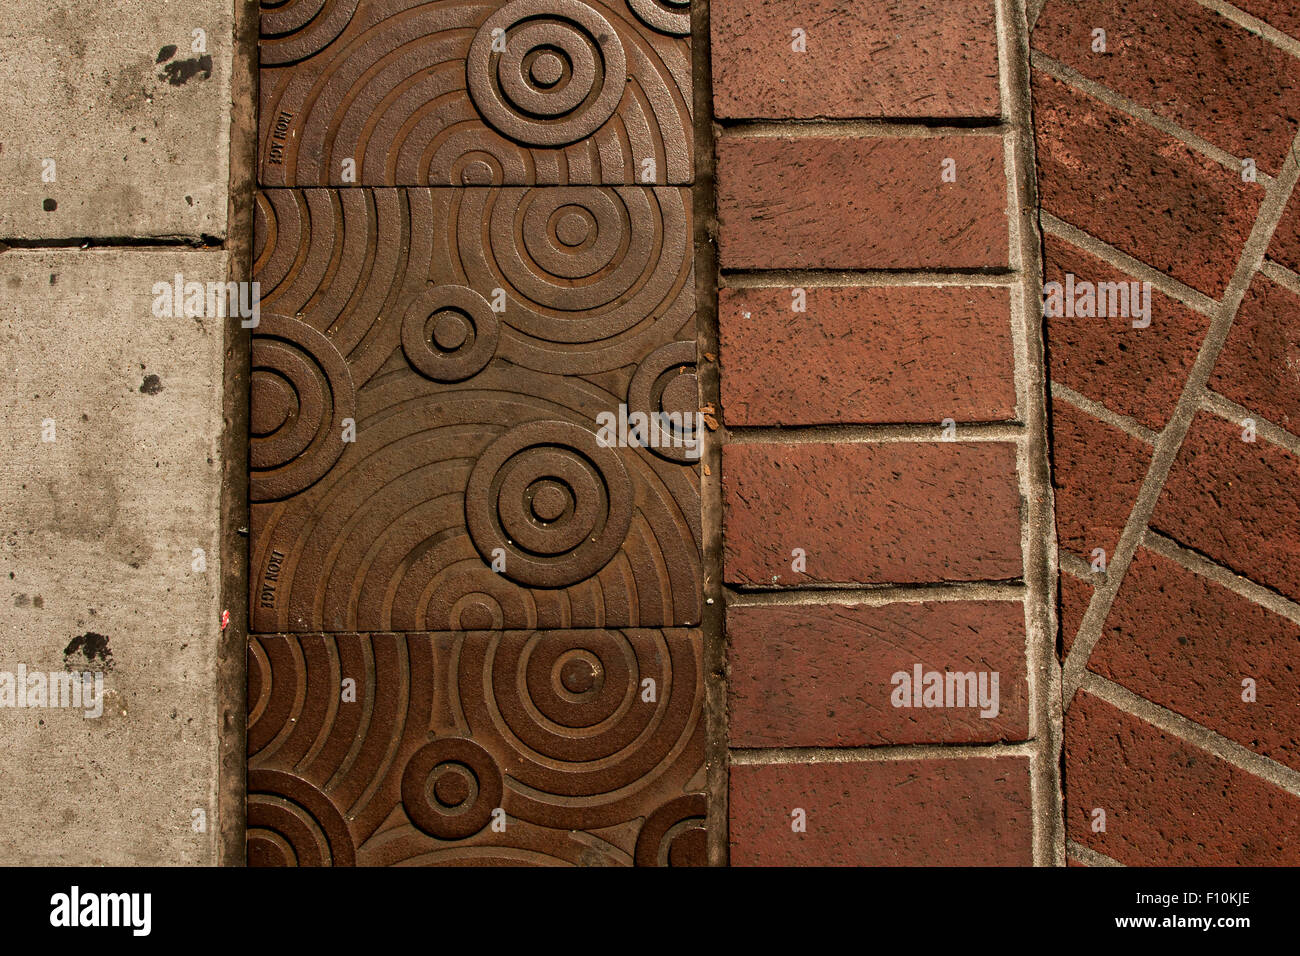 Sidewalk outside of the 24th Street BART station in The Mission, San Francisco, California. - Stock Image